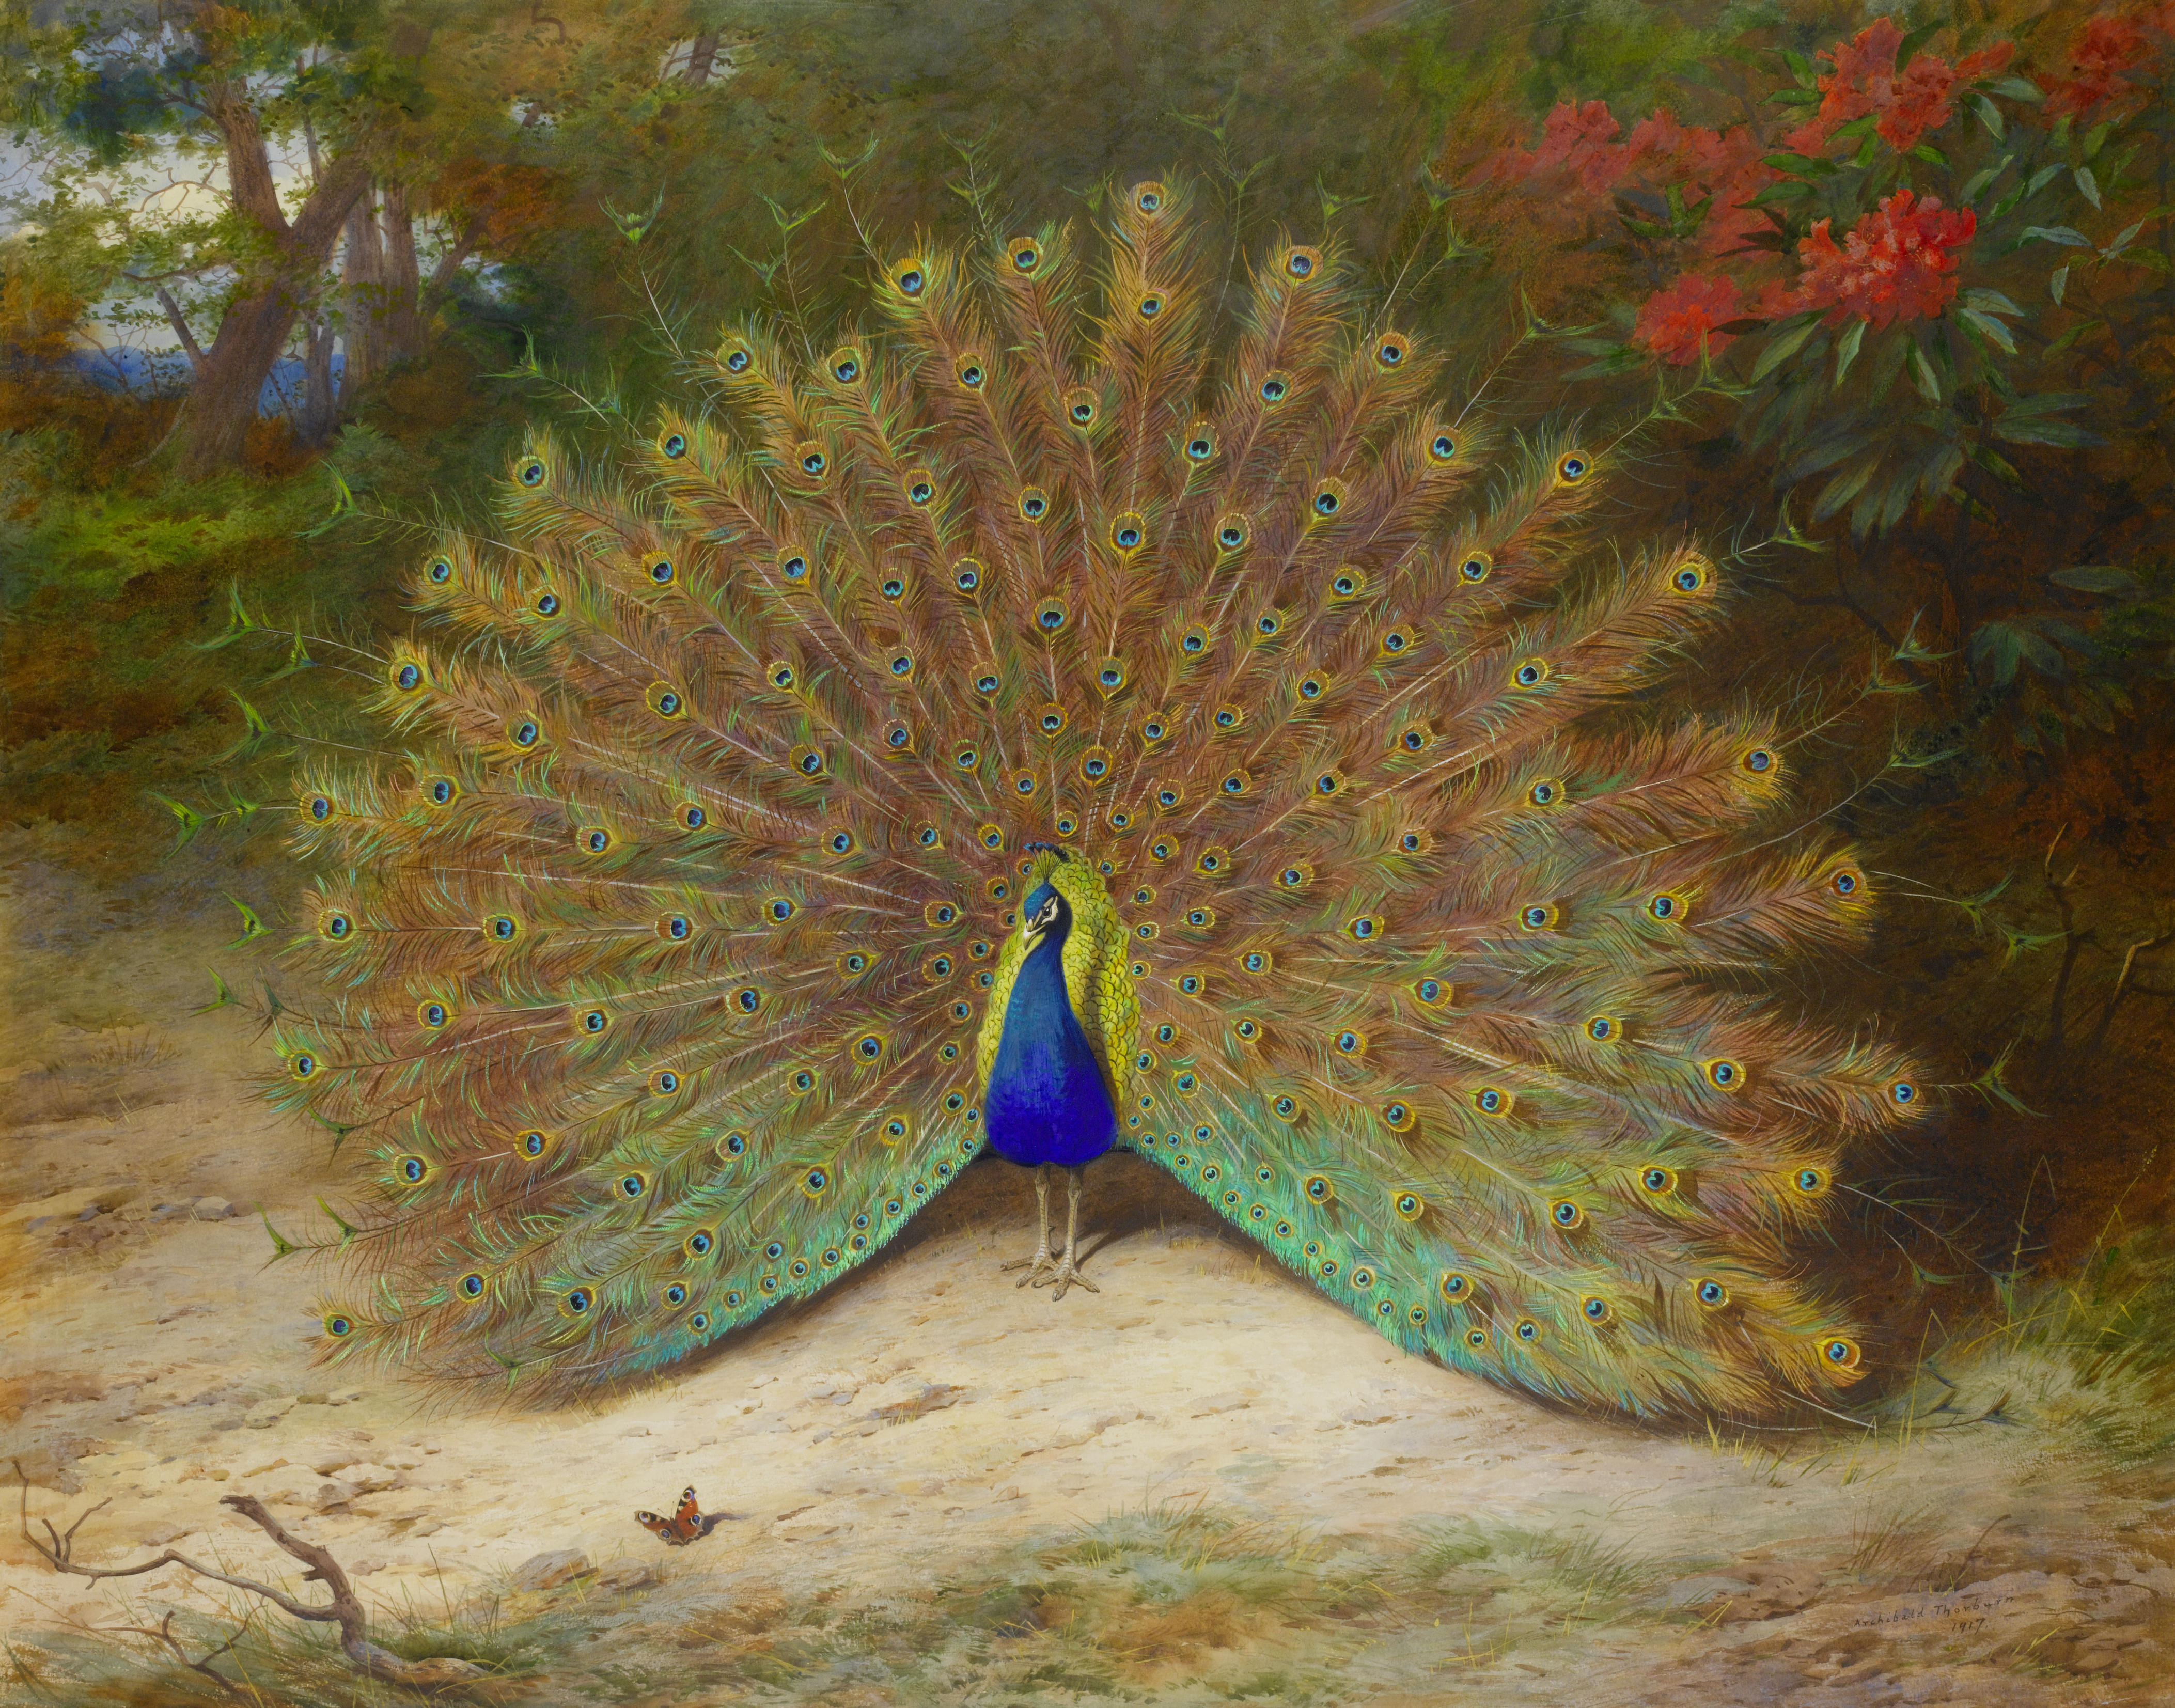 a6e68c3af The Peacock in Myth, Legend, and 19th Century History | Author Mimi ...